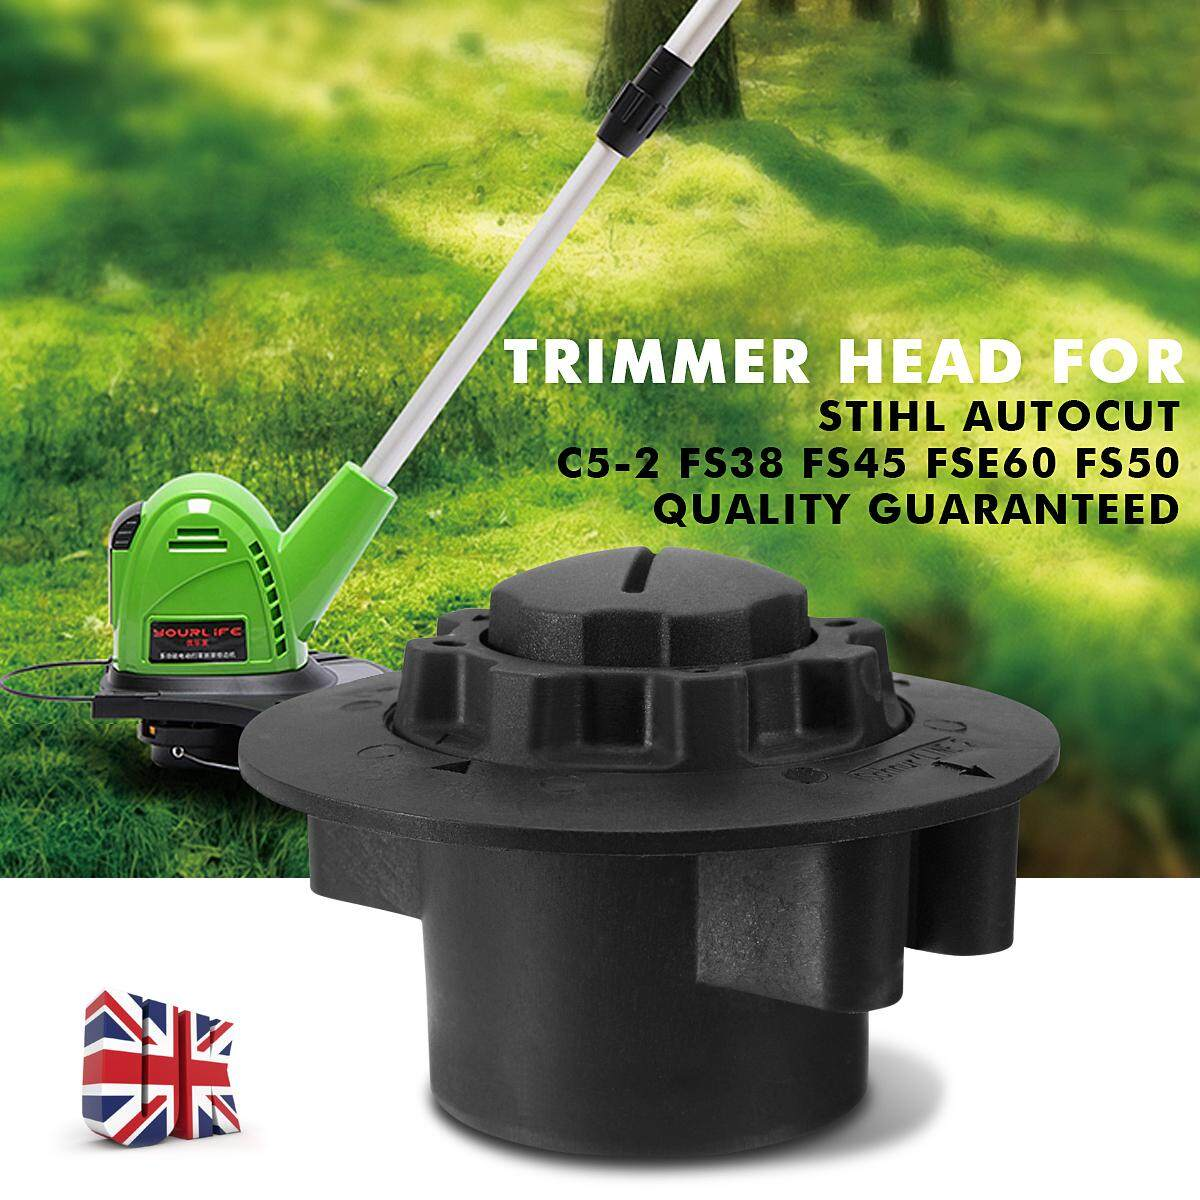 【Free Shipping + Flash Deal】Auto Trimmer Head for Stihl Autocut C5-2 FS38  FS45 FSE60 FS50 Quality Guaranteed